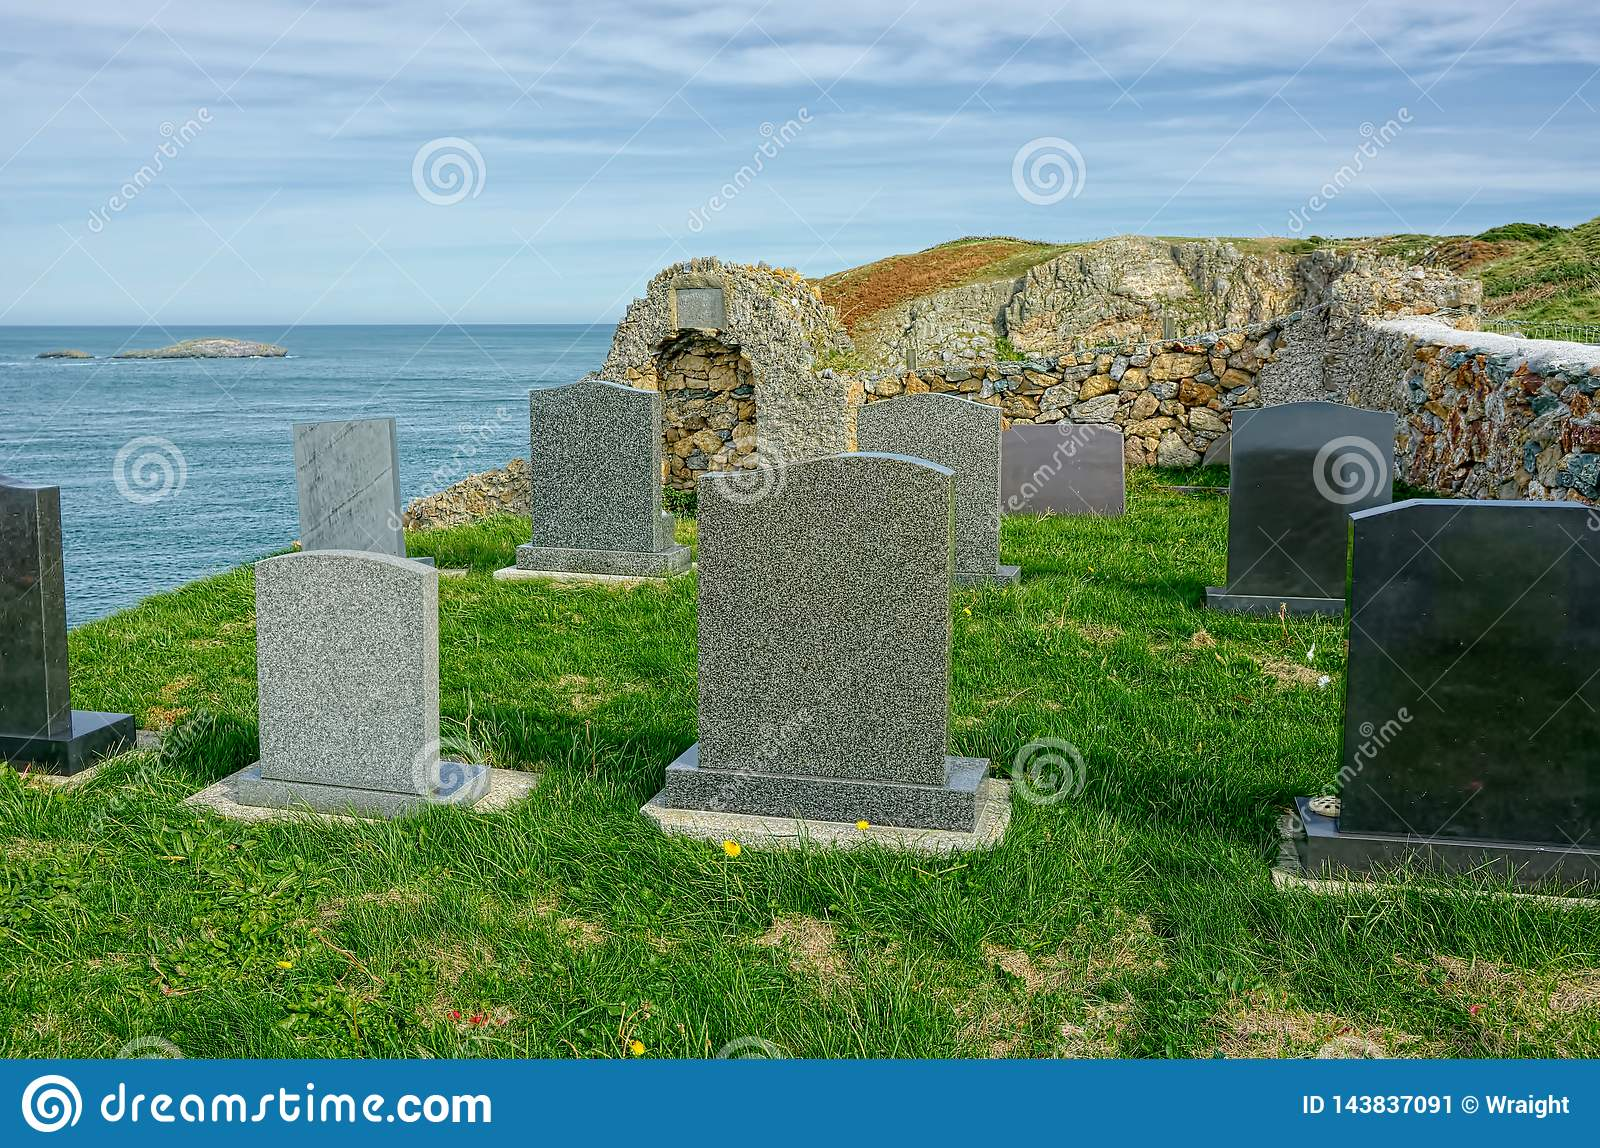 Graves on cliff edge. Final resting place with dramatic sea view.